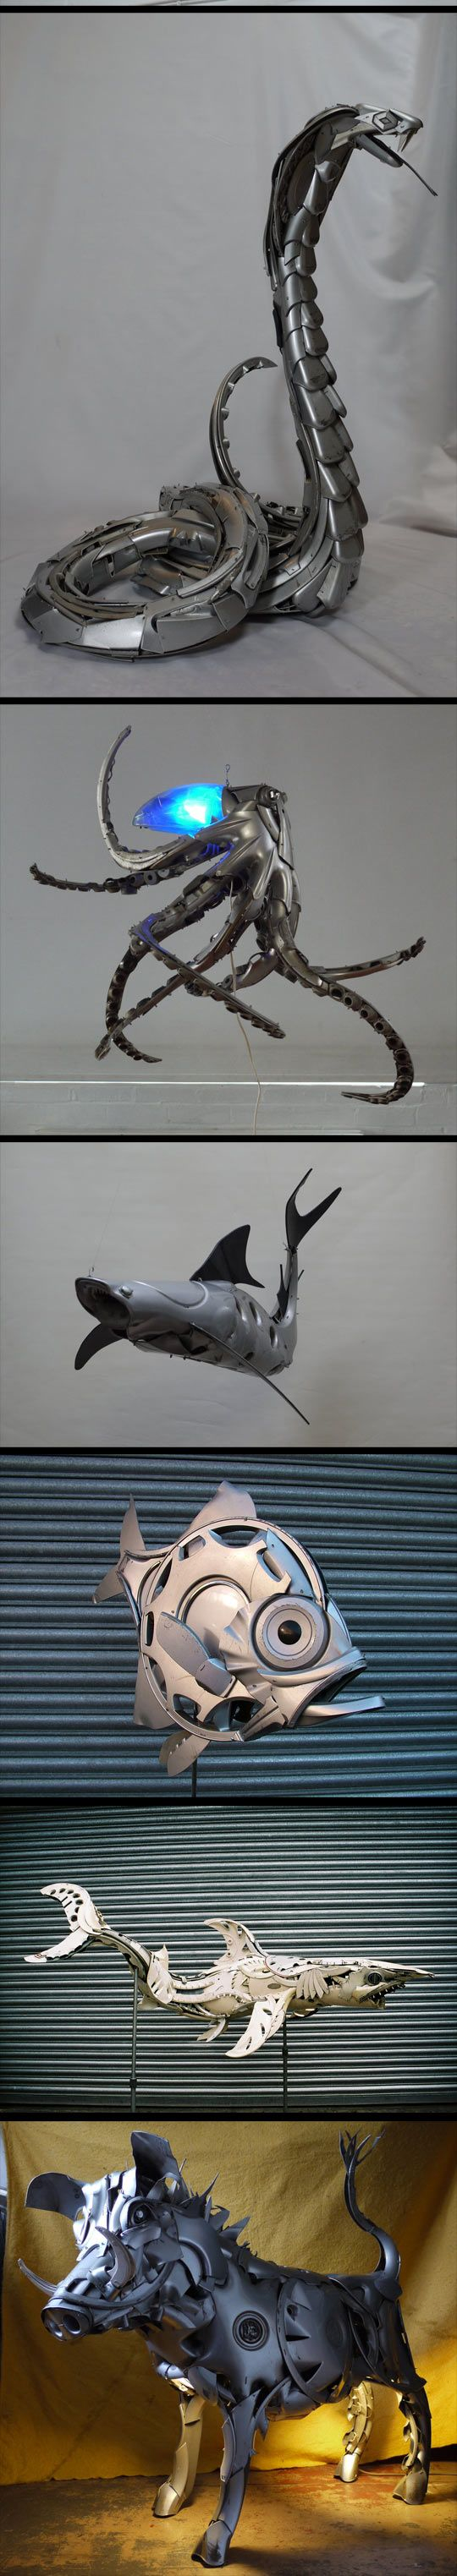 Amazing Sculptures